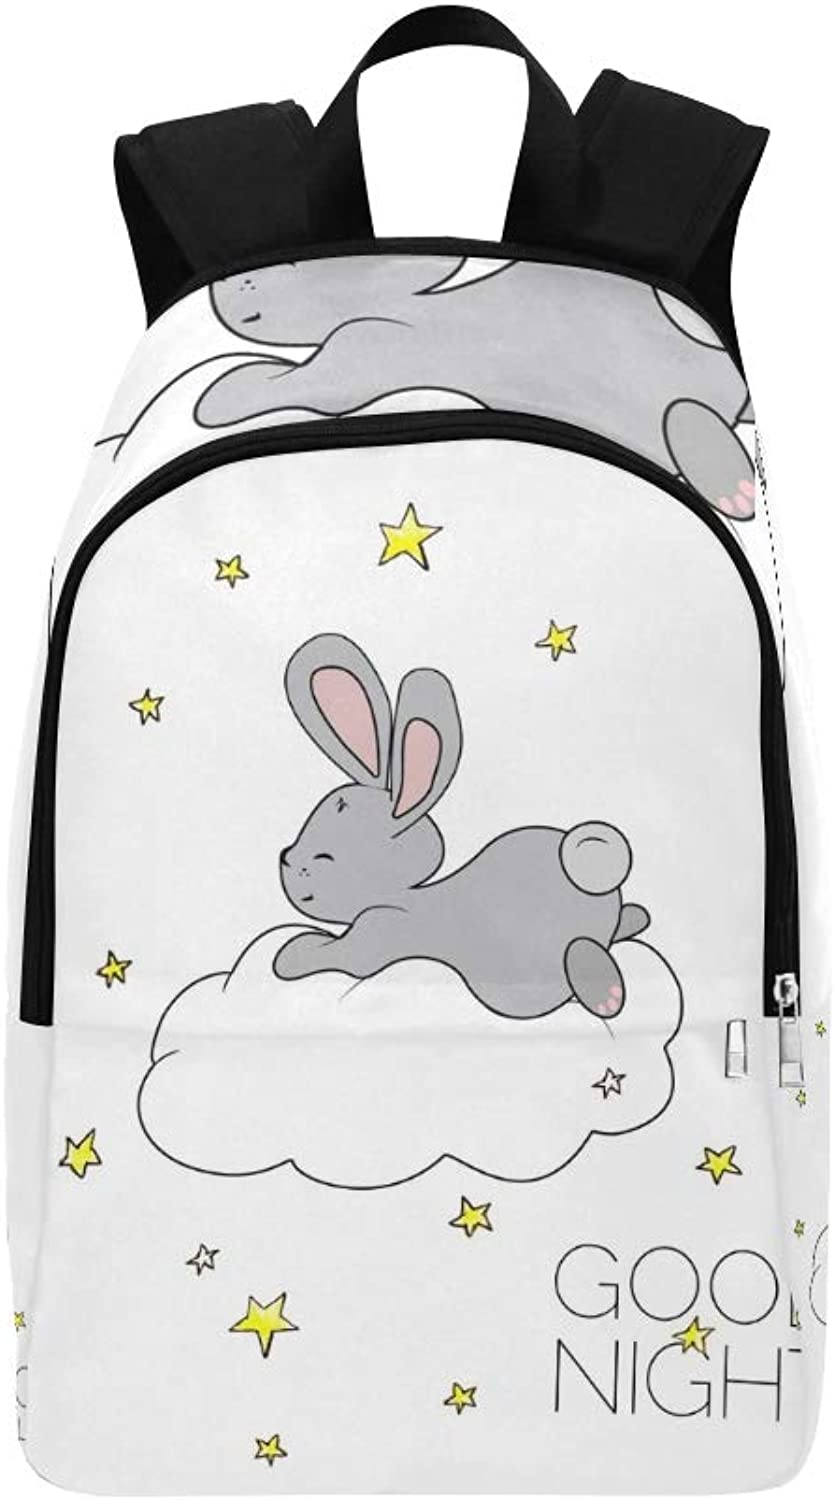 Dreaming Bunny Card Cute Bunny Concept Casual Daypack Travel Bag College School Backpack for Mens and Women